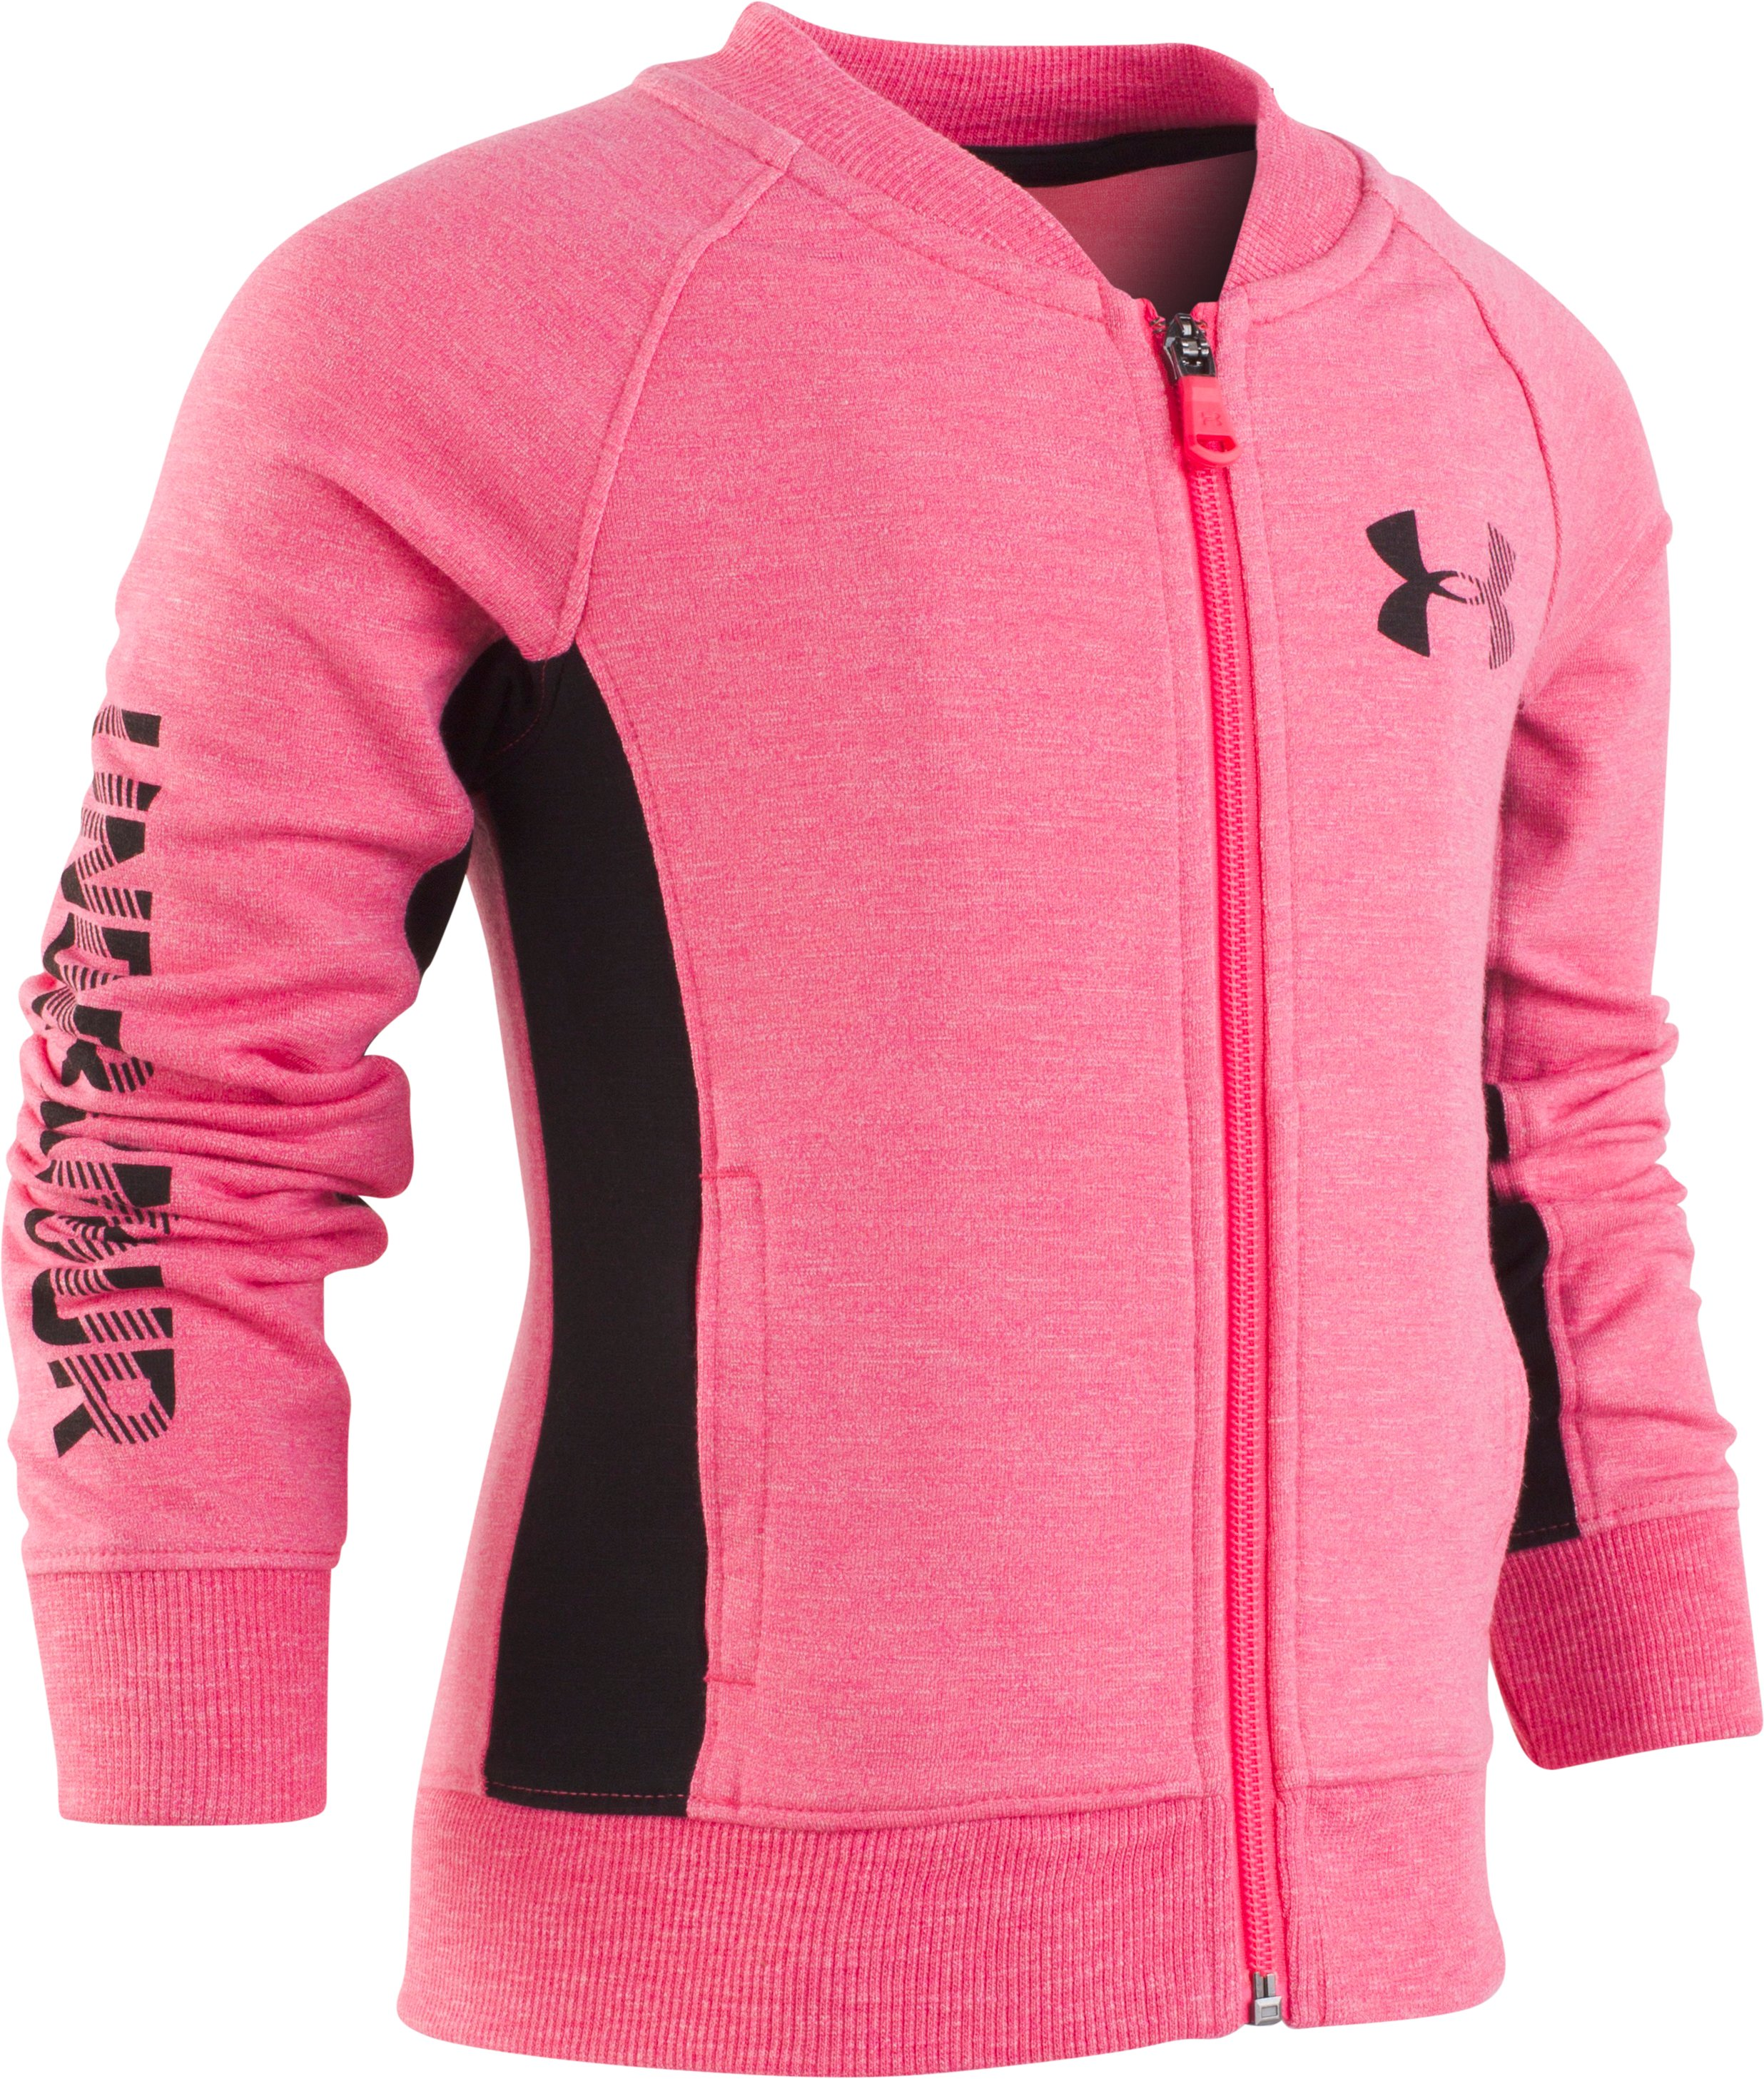 Girls' Pre-School UA Elevated Bomber Jacket 1 Color $28.50